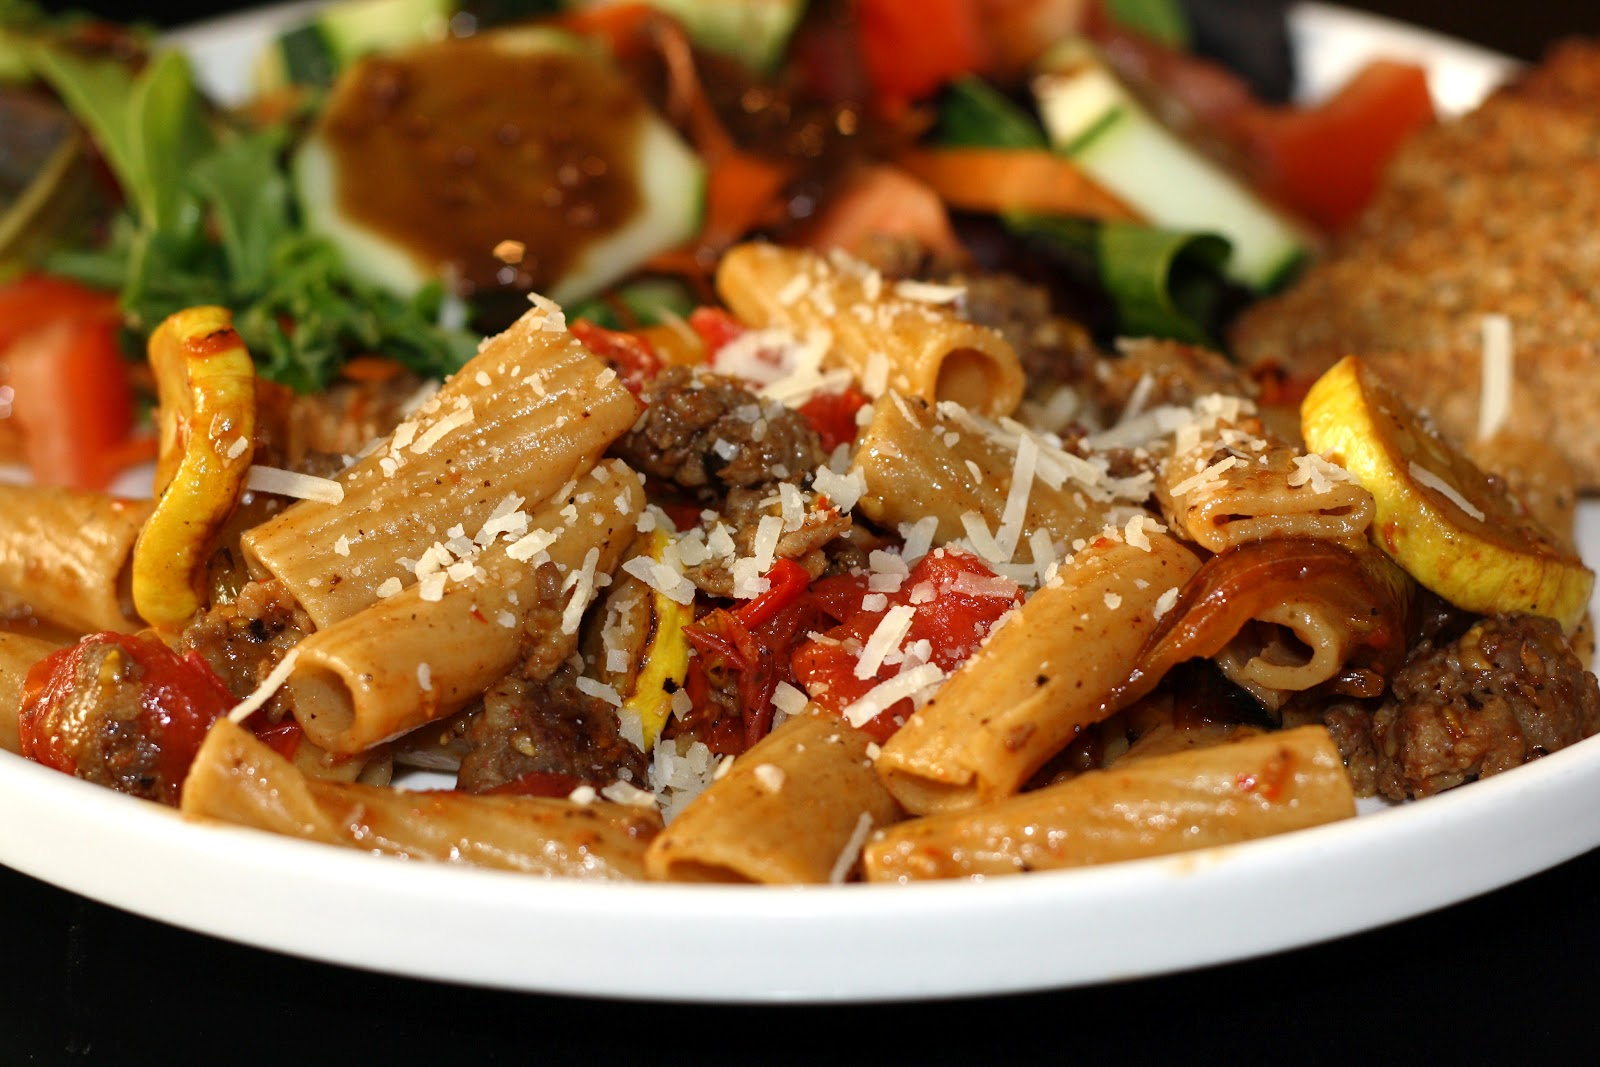 ... for dinner?: pasta with peppers, squash, and tomatoes... 45 minutes